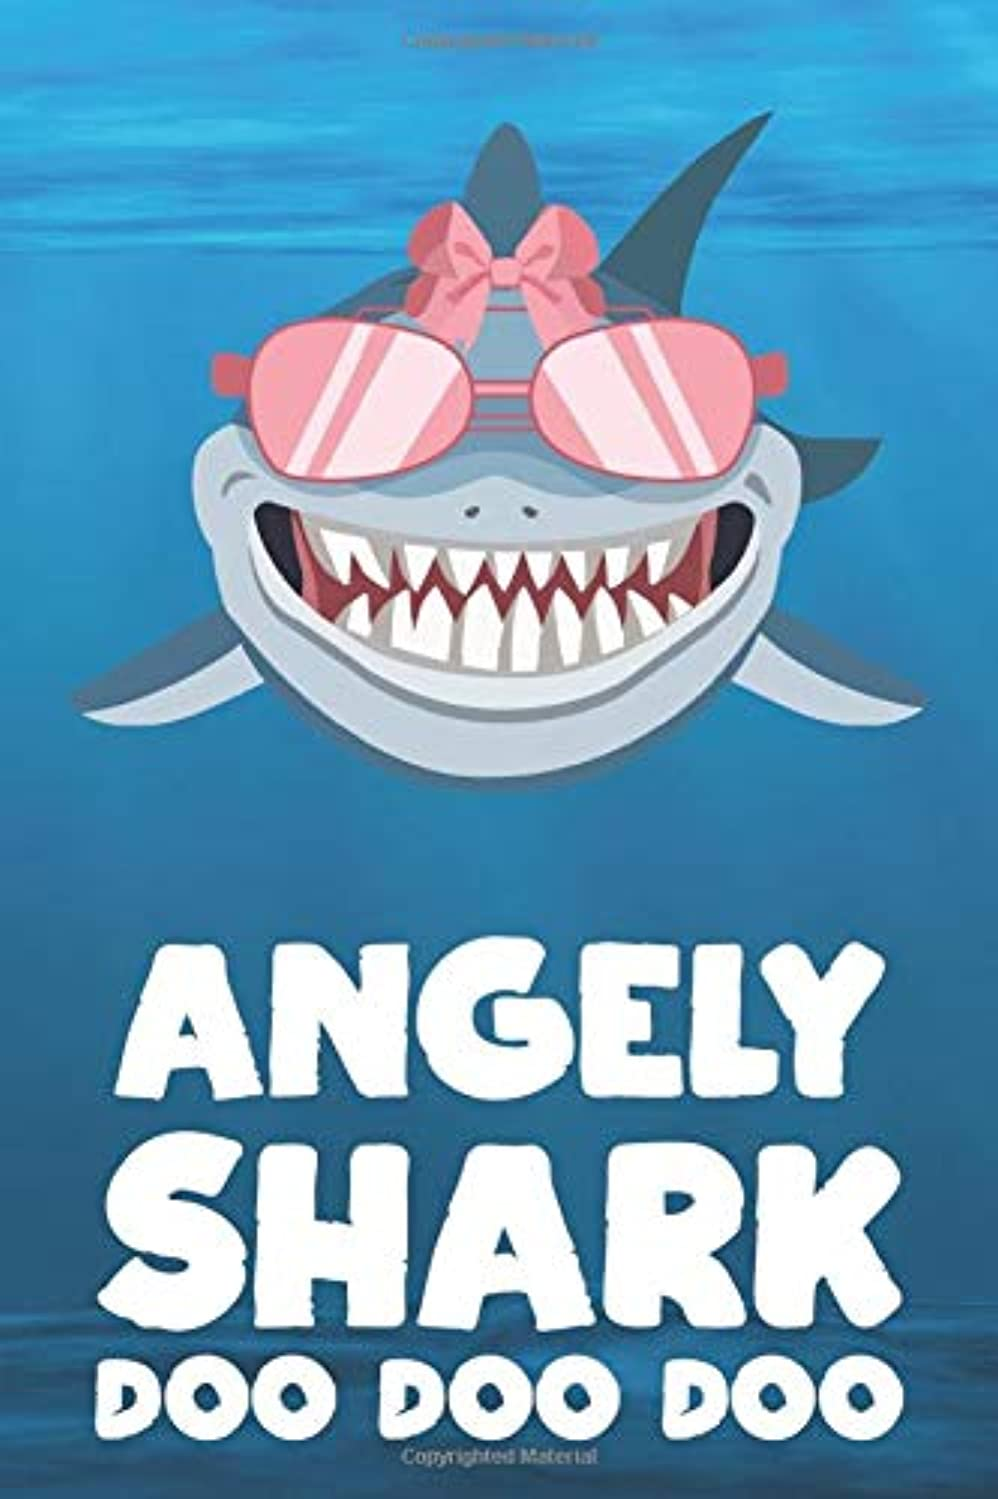 Angely - Shark Doo Doo Doo: Blank Ruled Personalized & Customized Name Shark Notebook Journal for Girls & Women. Funny Sharks Desk Accessories Item ... Birthday & Christmas Gift for Women.